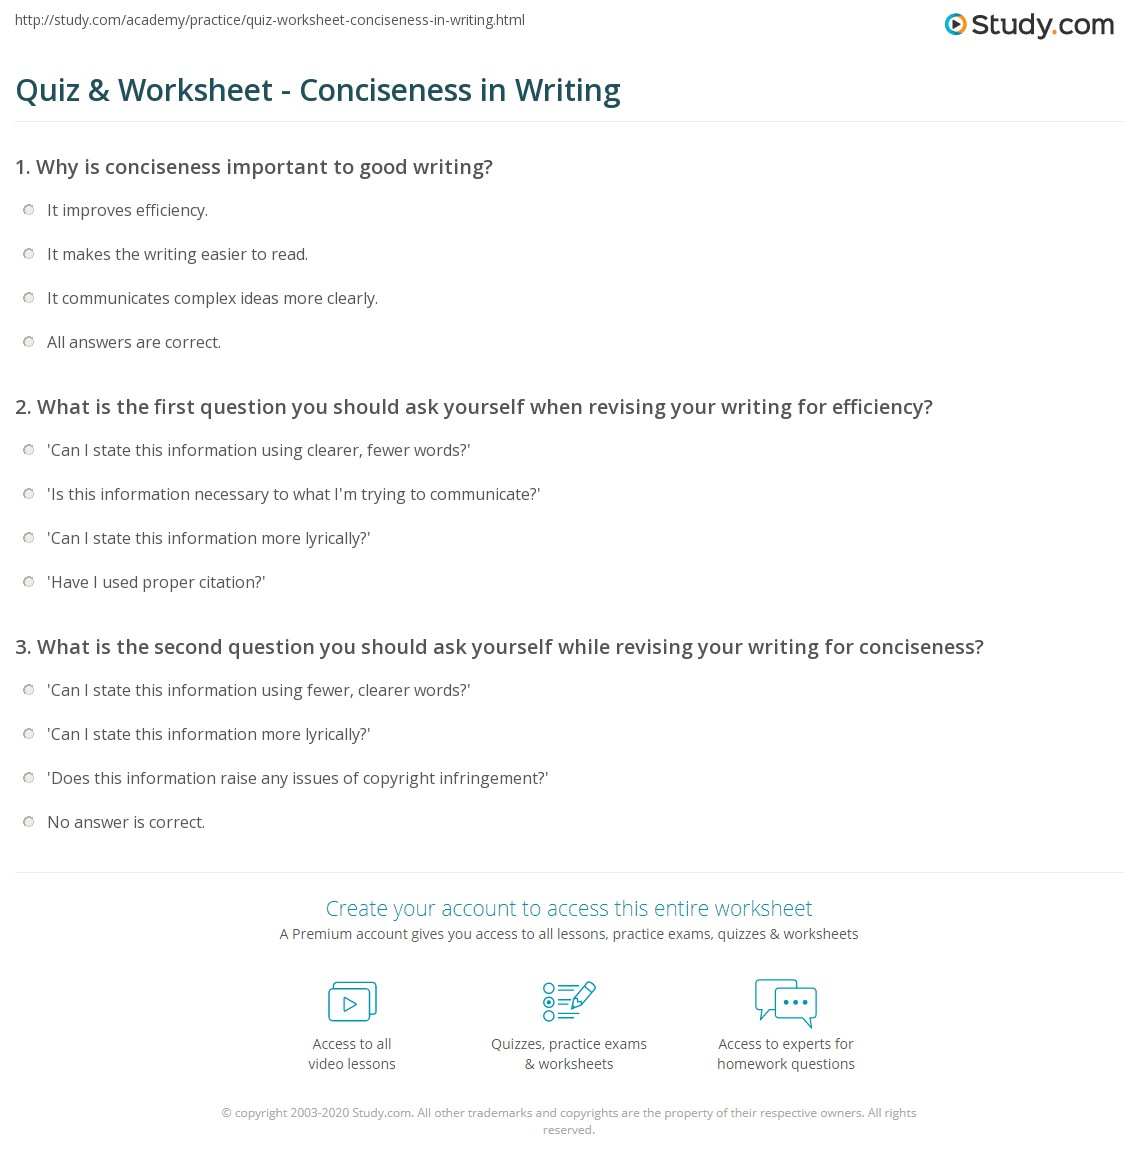 Quiz Worksheet Conciseness In Writing Study